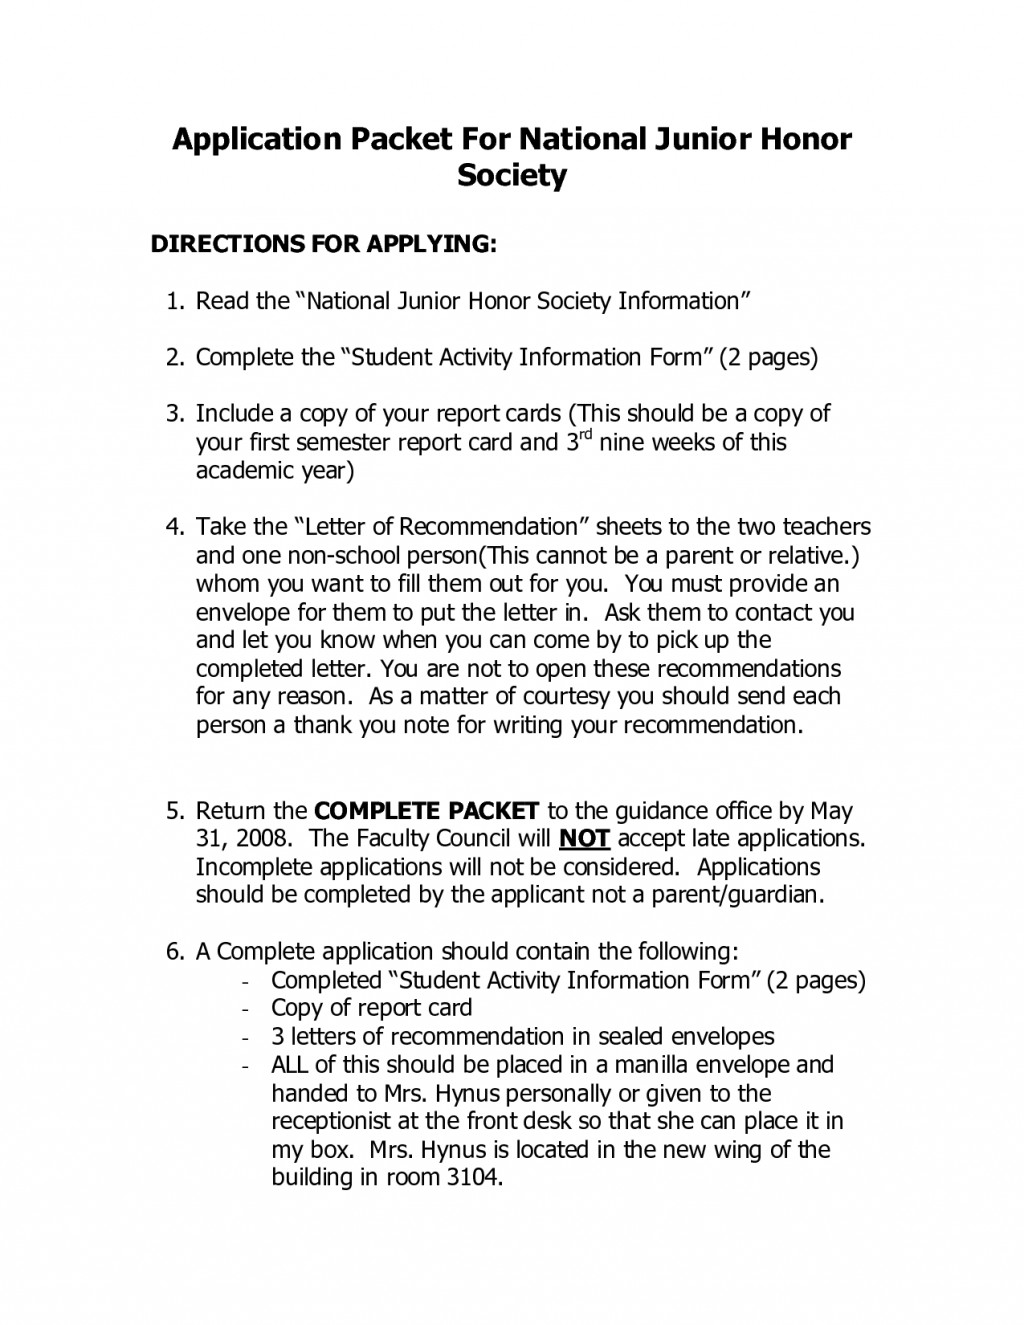 003 Application Essay National Junior Honor Society Conclusion Of To Example Unique Njhs Large